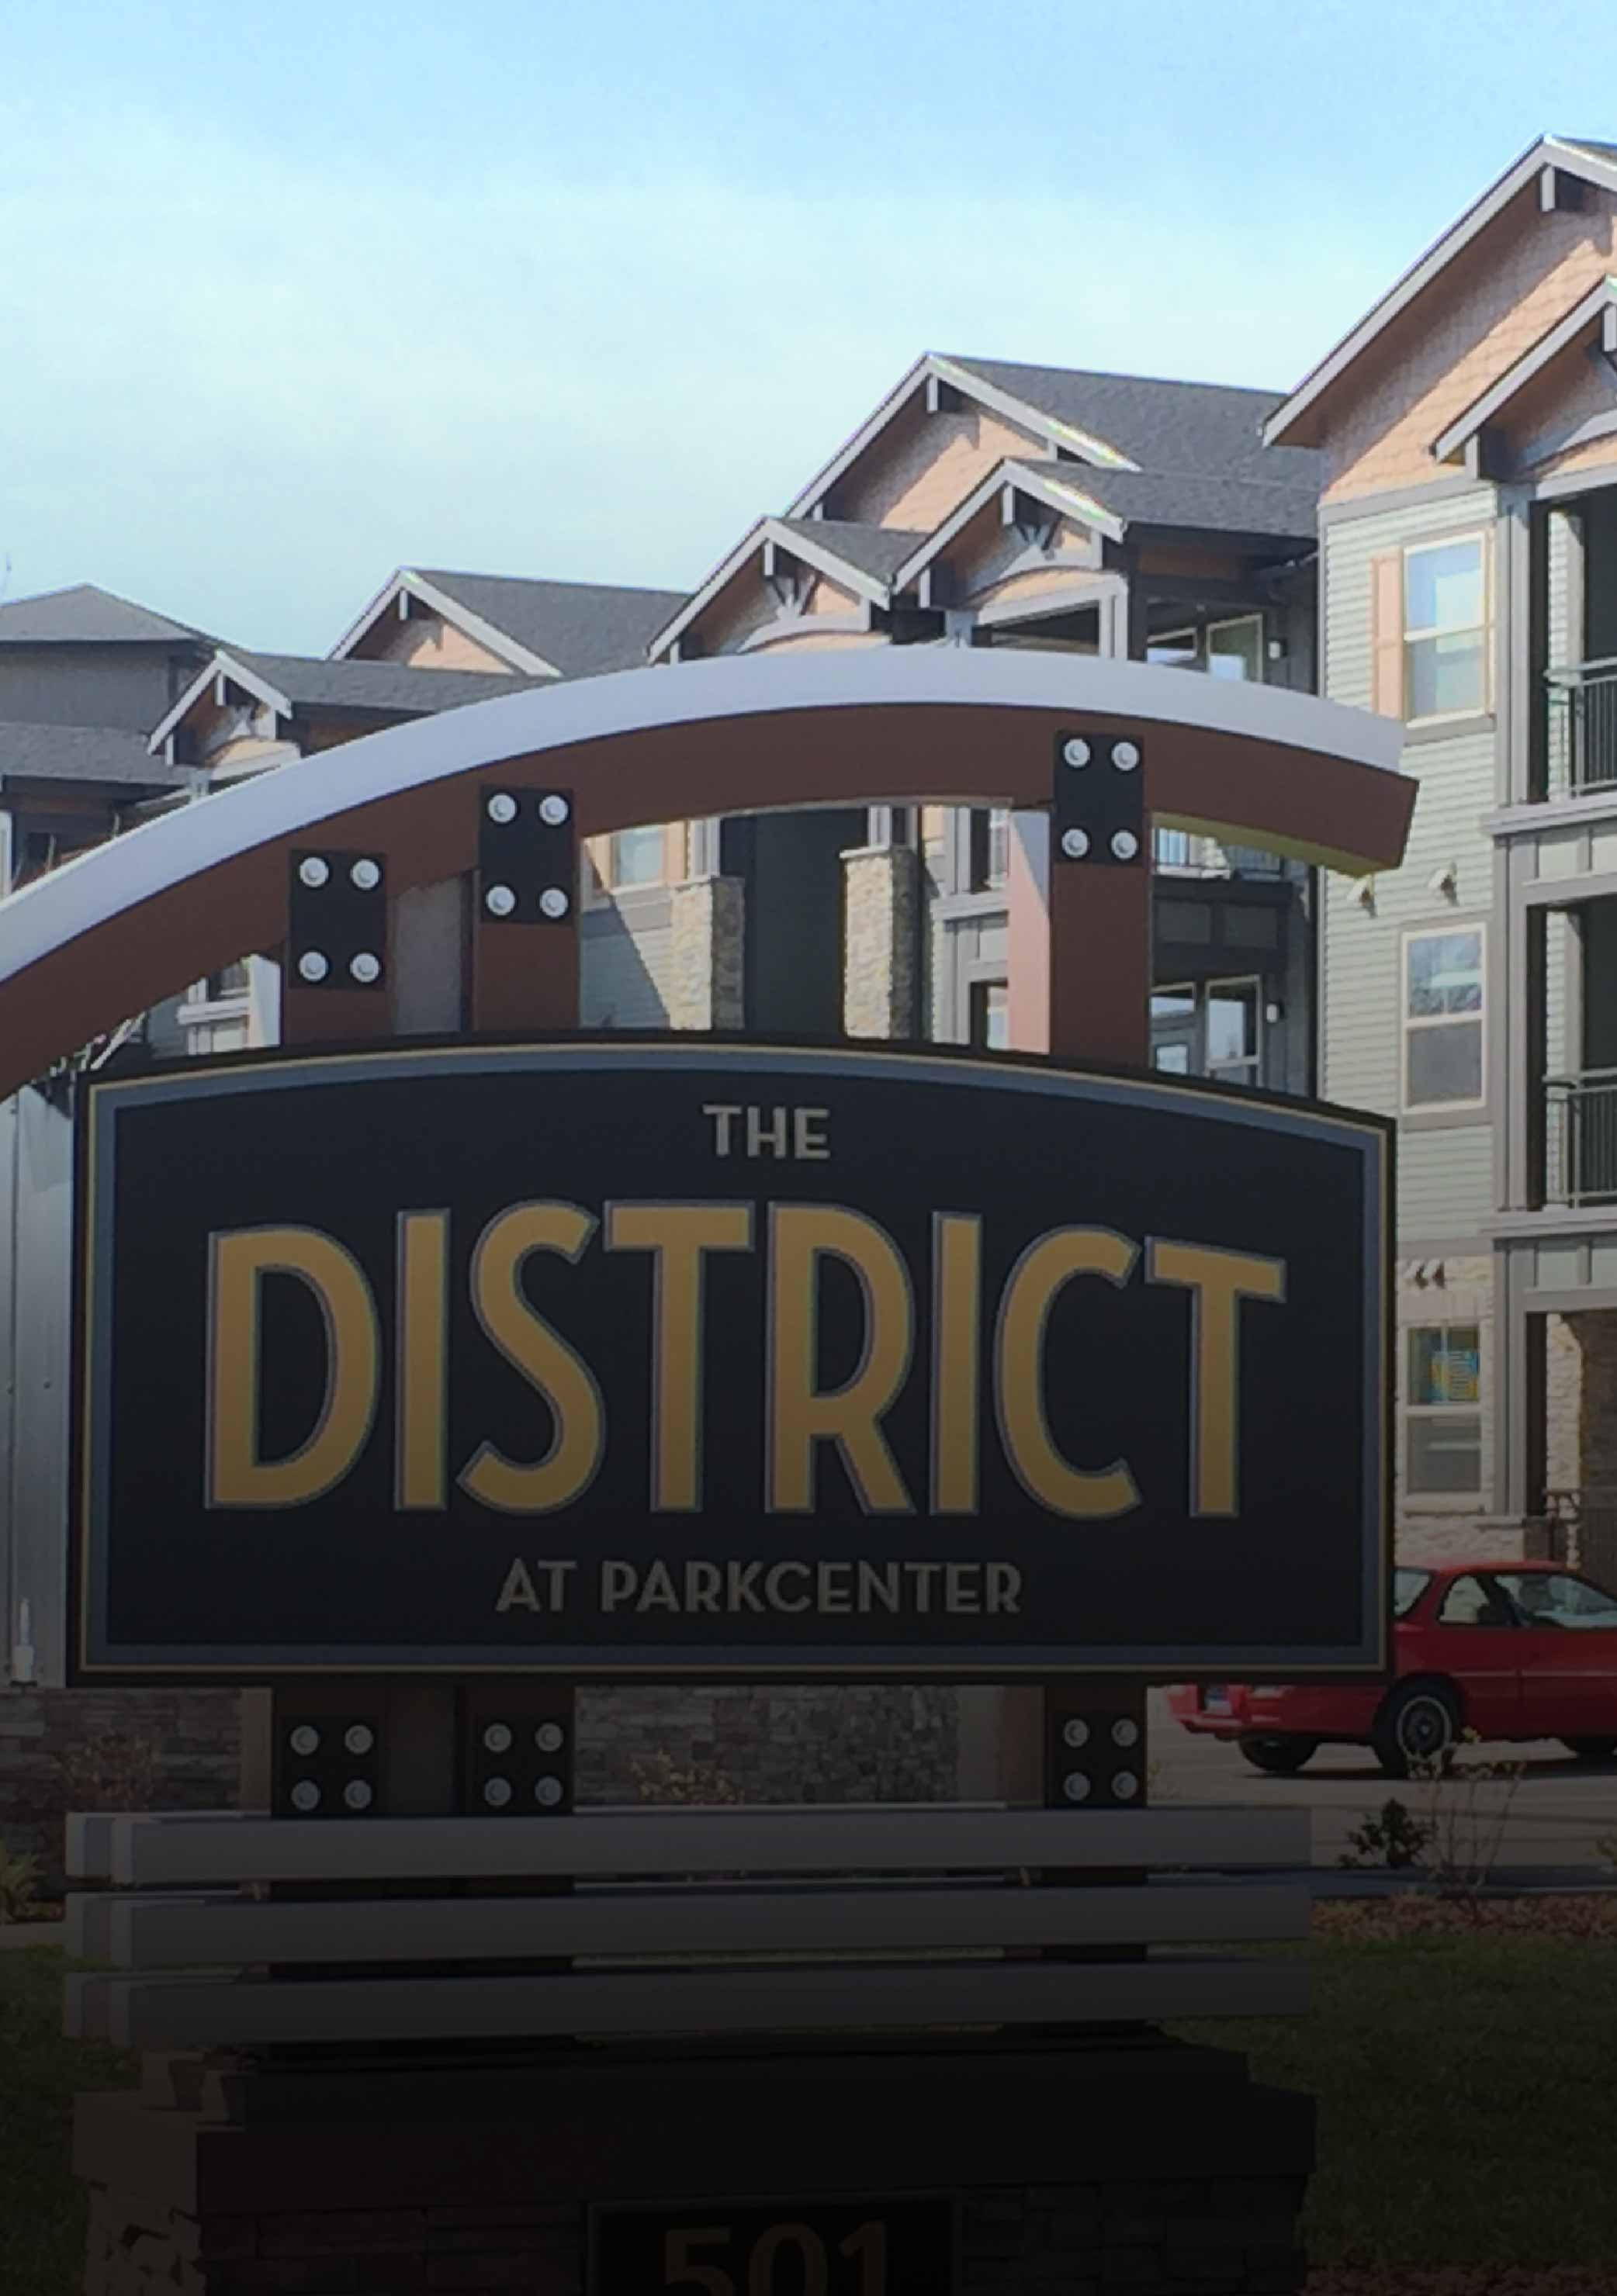 The District at Parkcenter | Project Spotlight